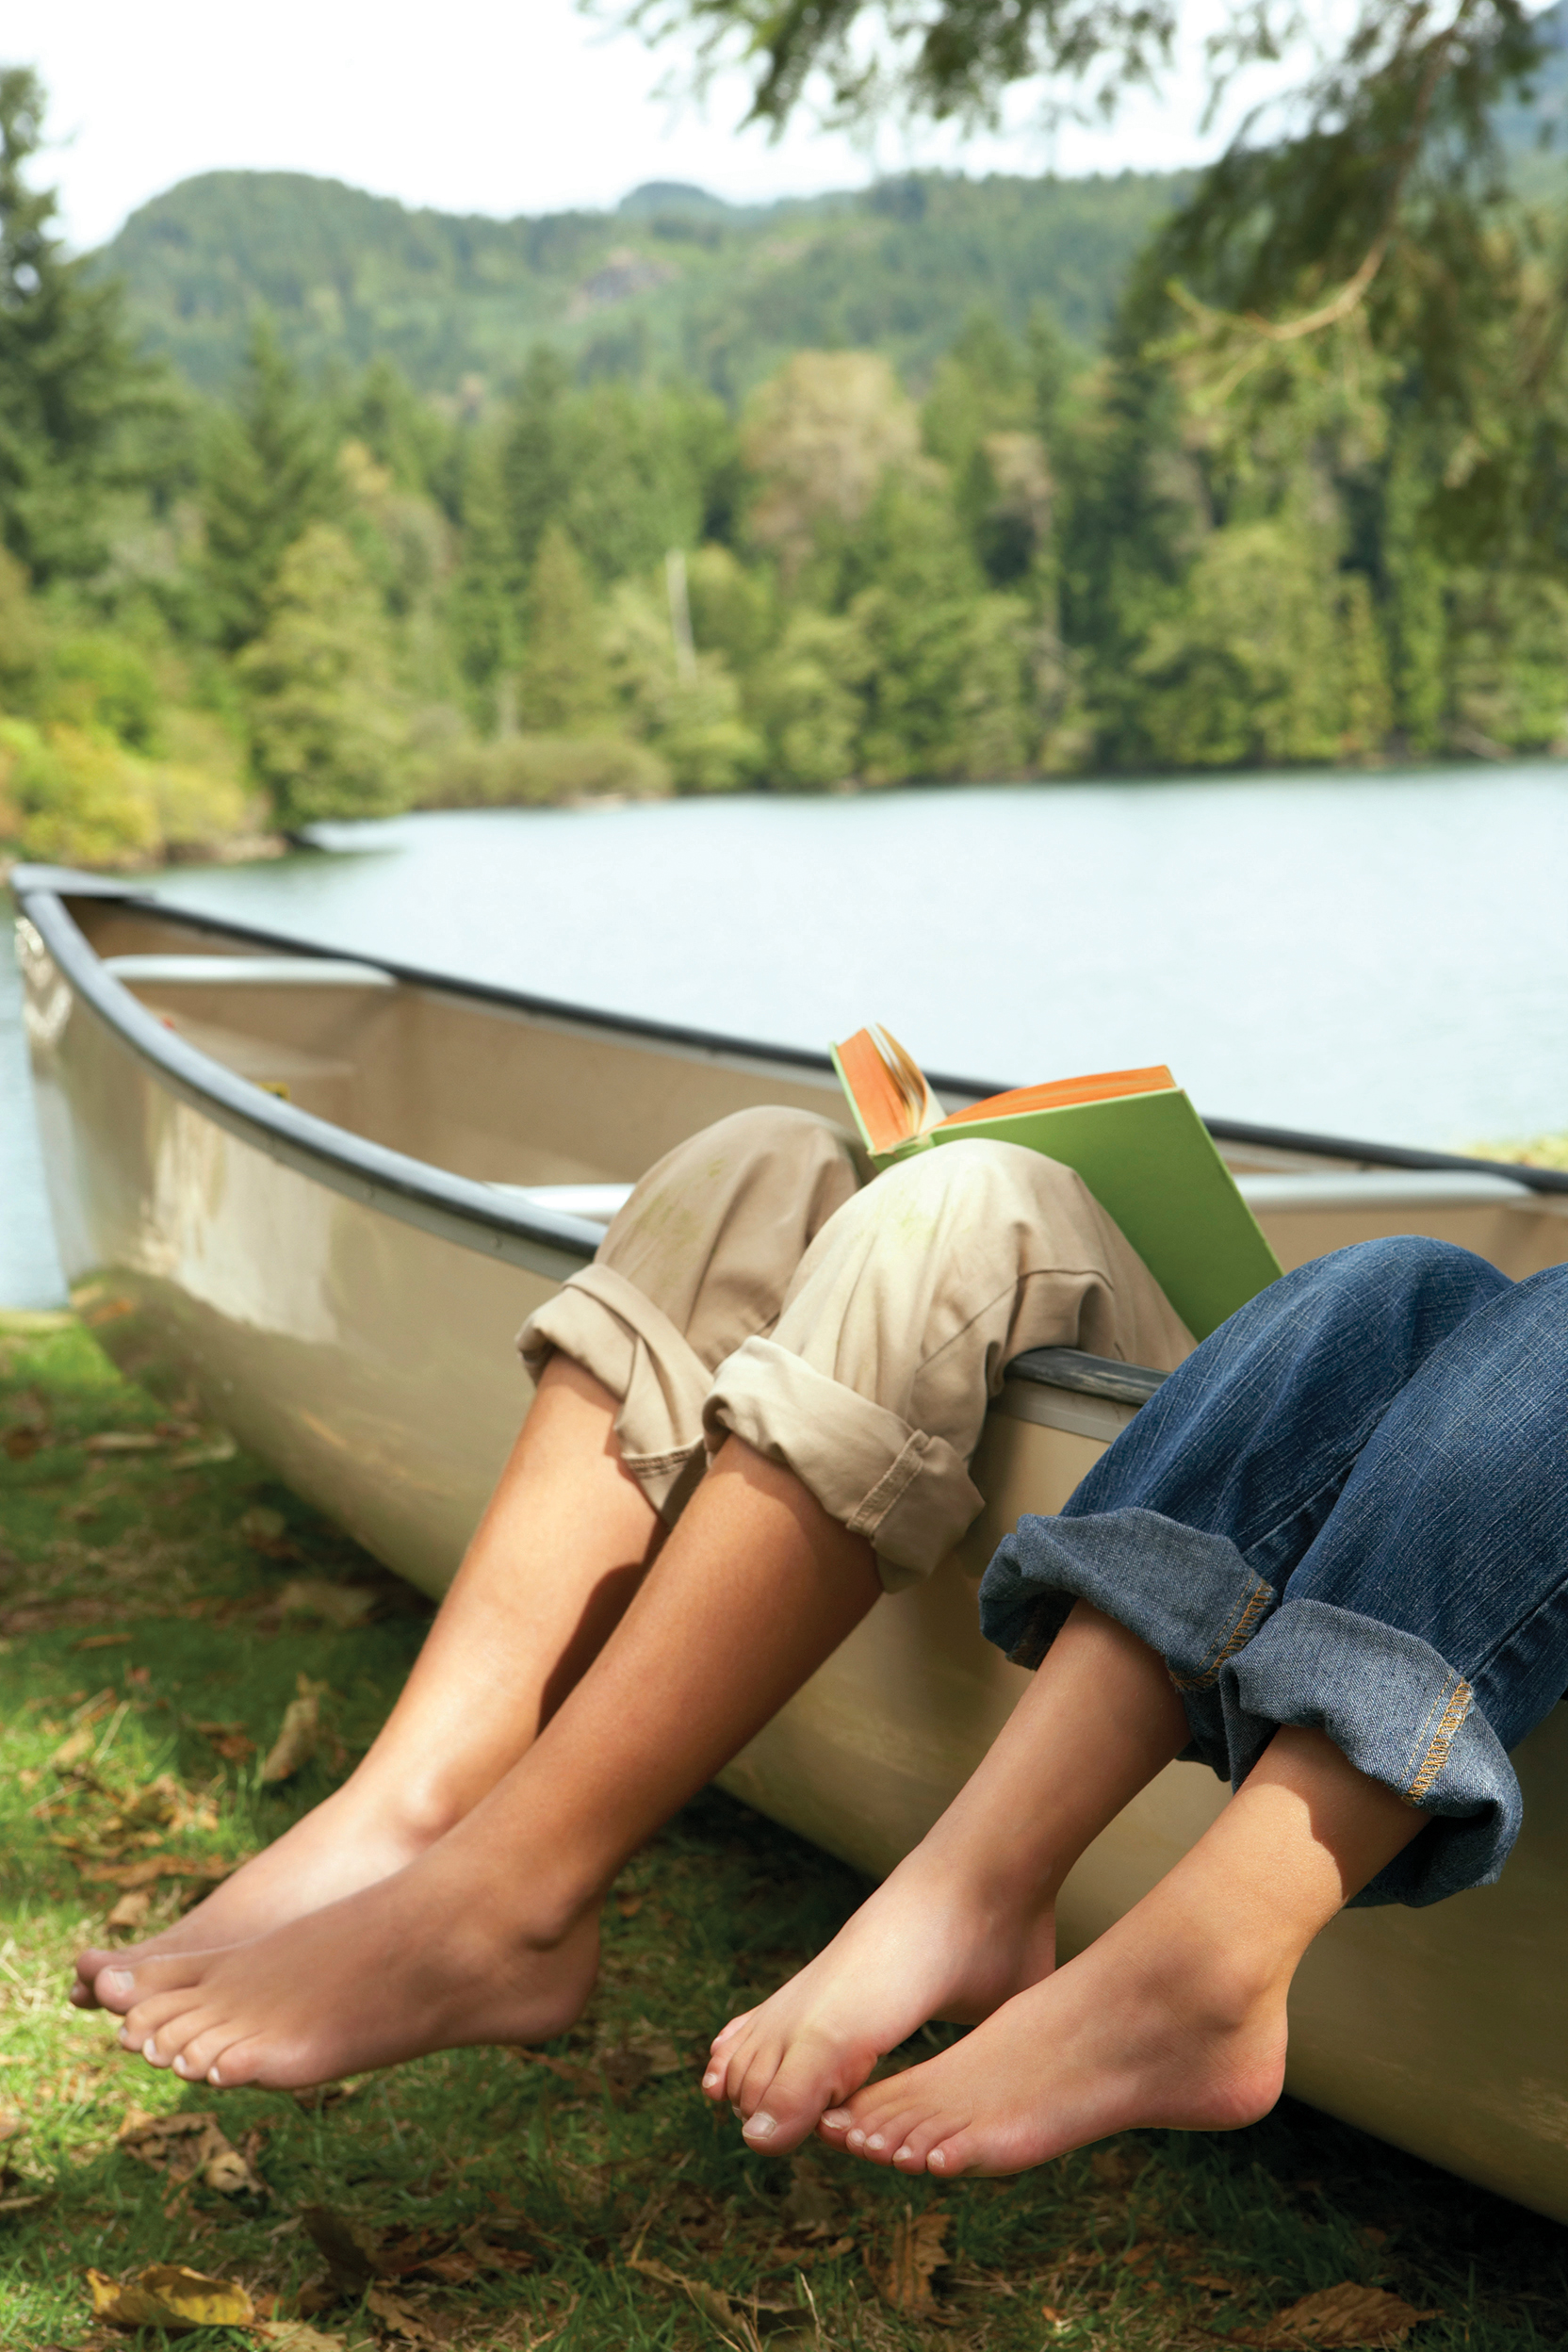 A canoe portage isn't all work and no play for these two friends as they take time to relax with their books. Photo courtesy Eastern Ontario Trails Alliance.